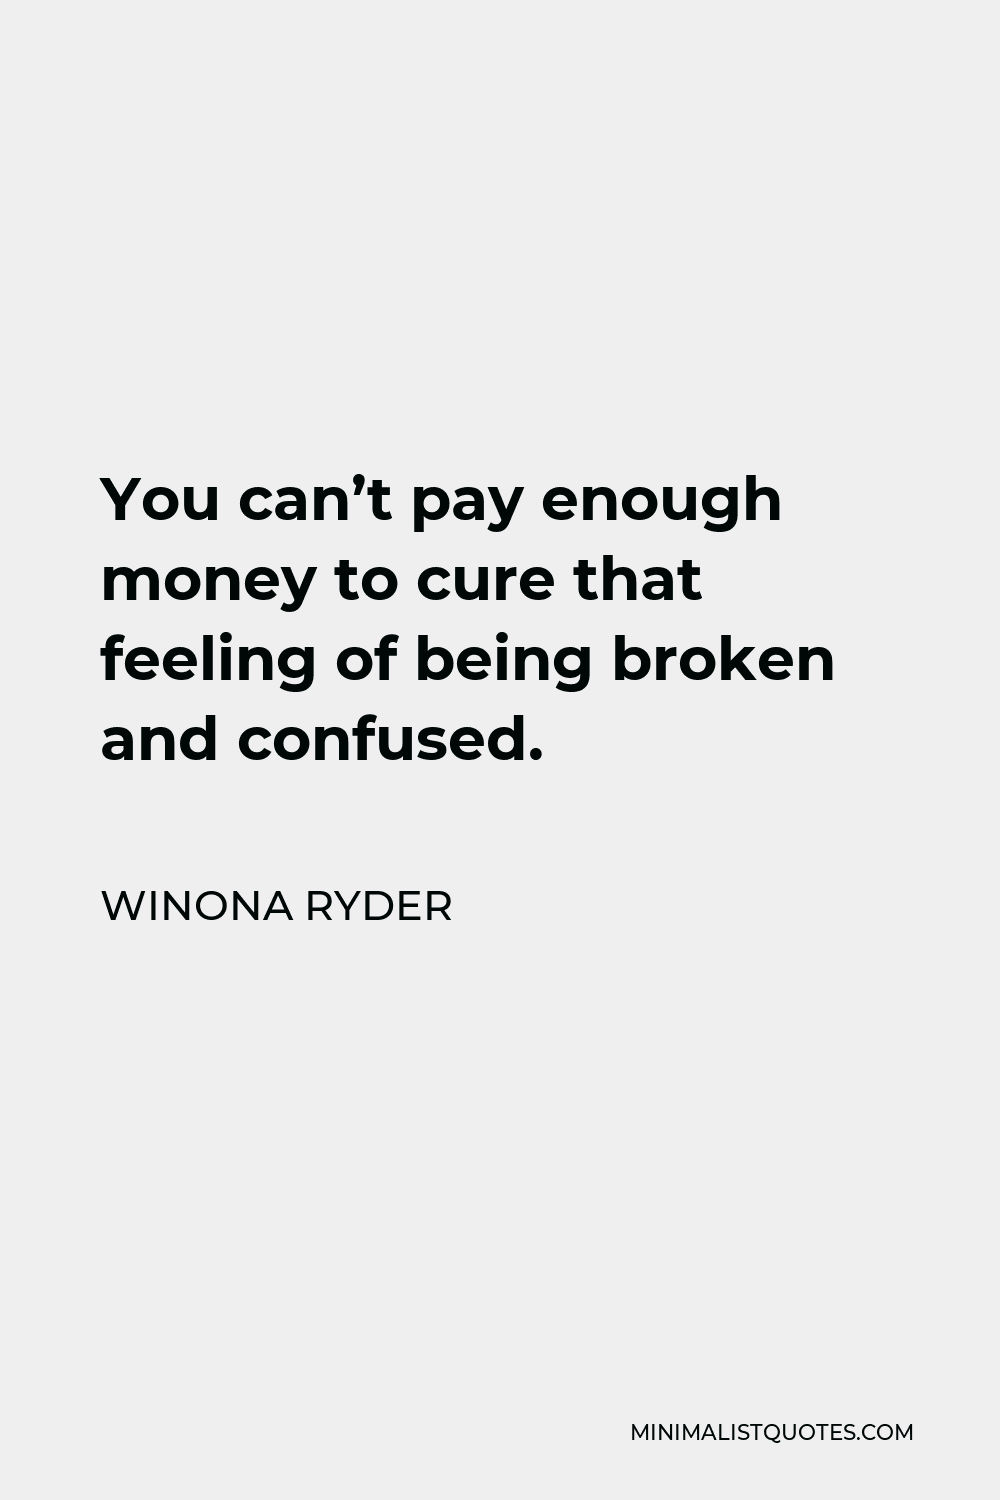 Winona Ryder Quote - You can't pay enough money to cure that feeling of being broken and confused.